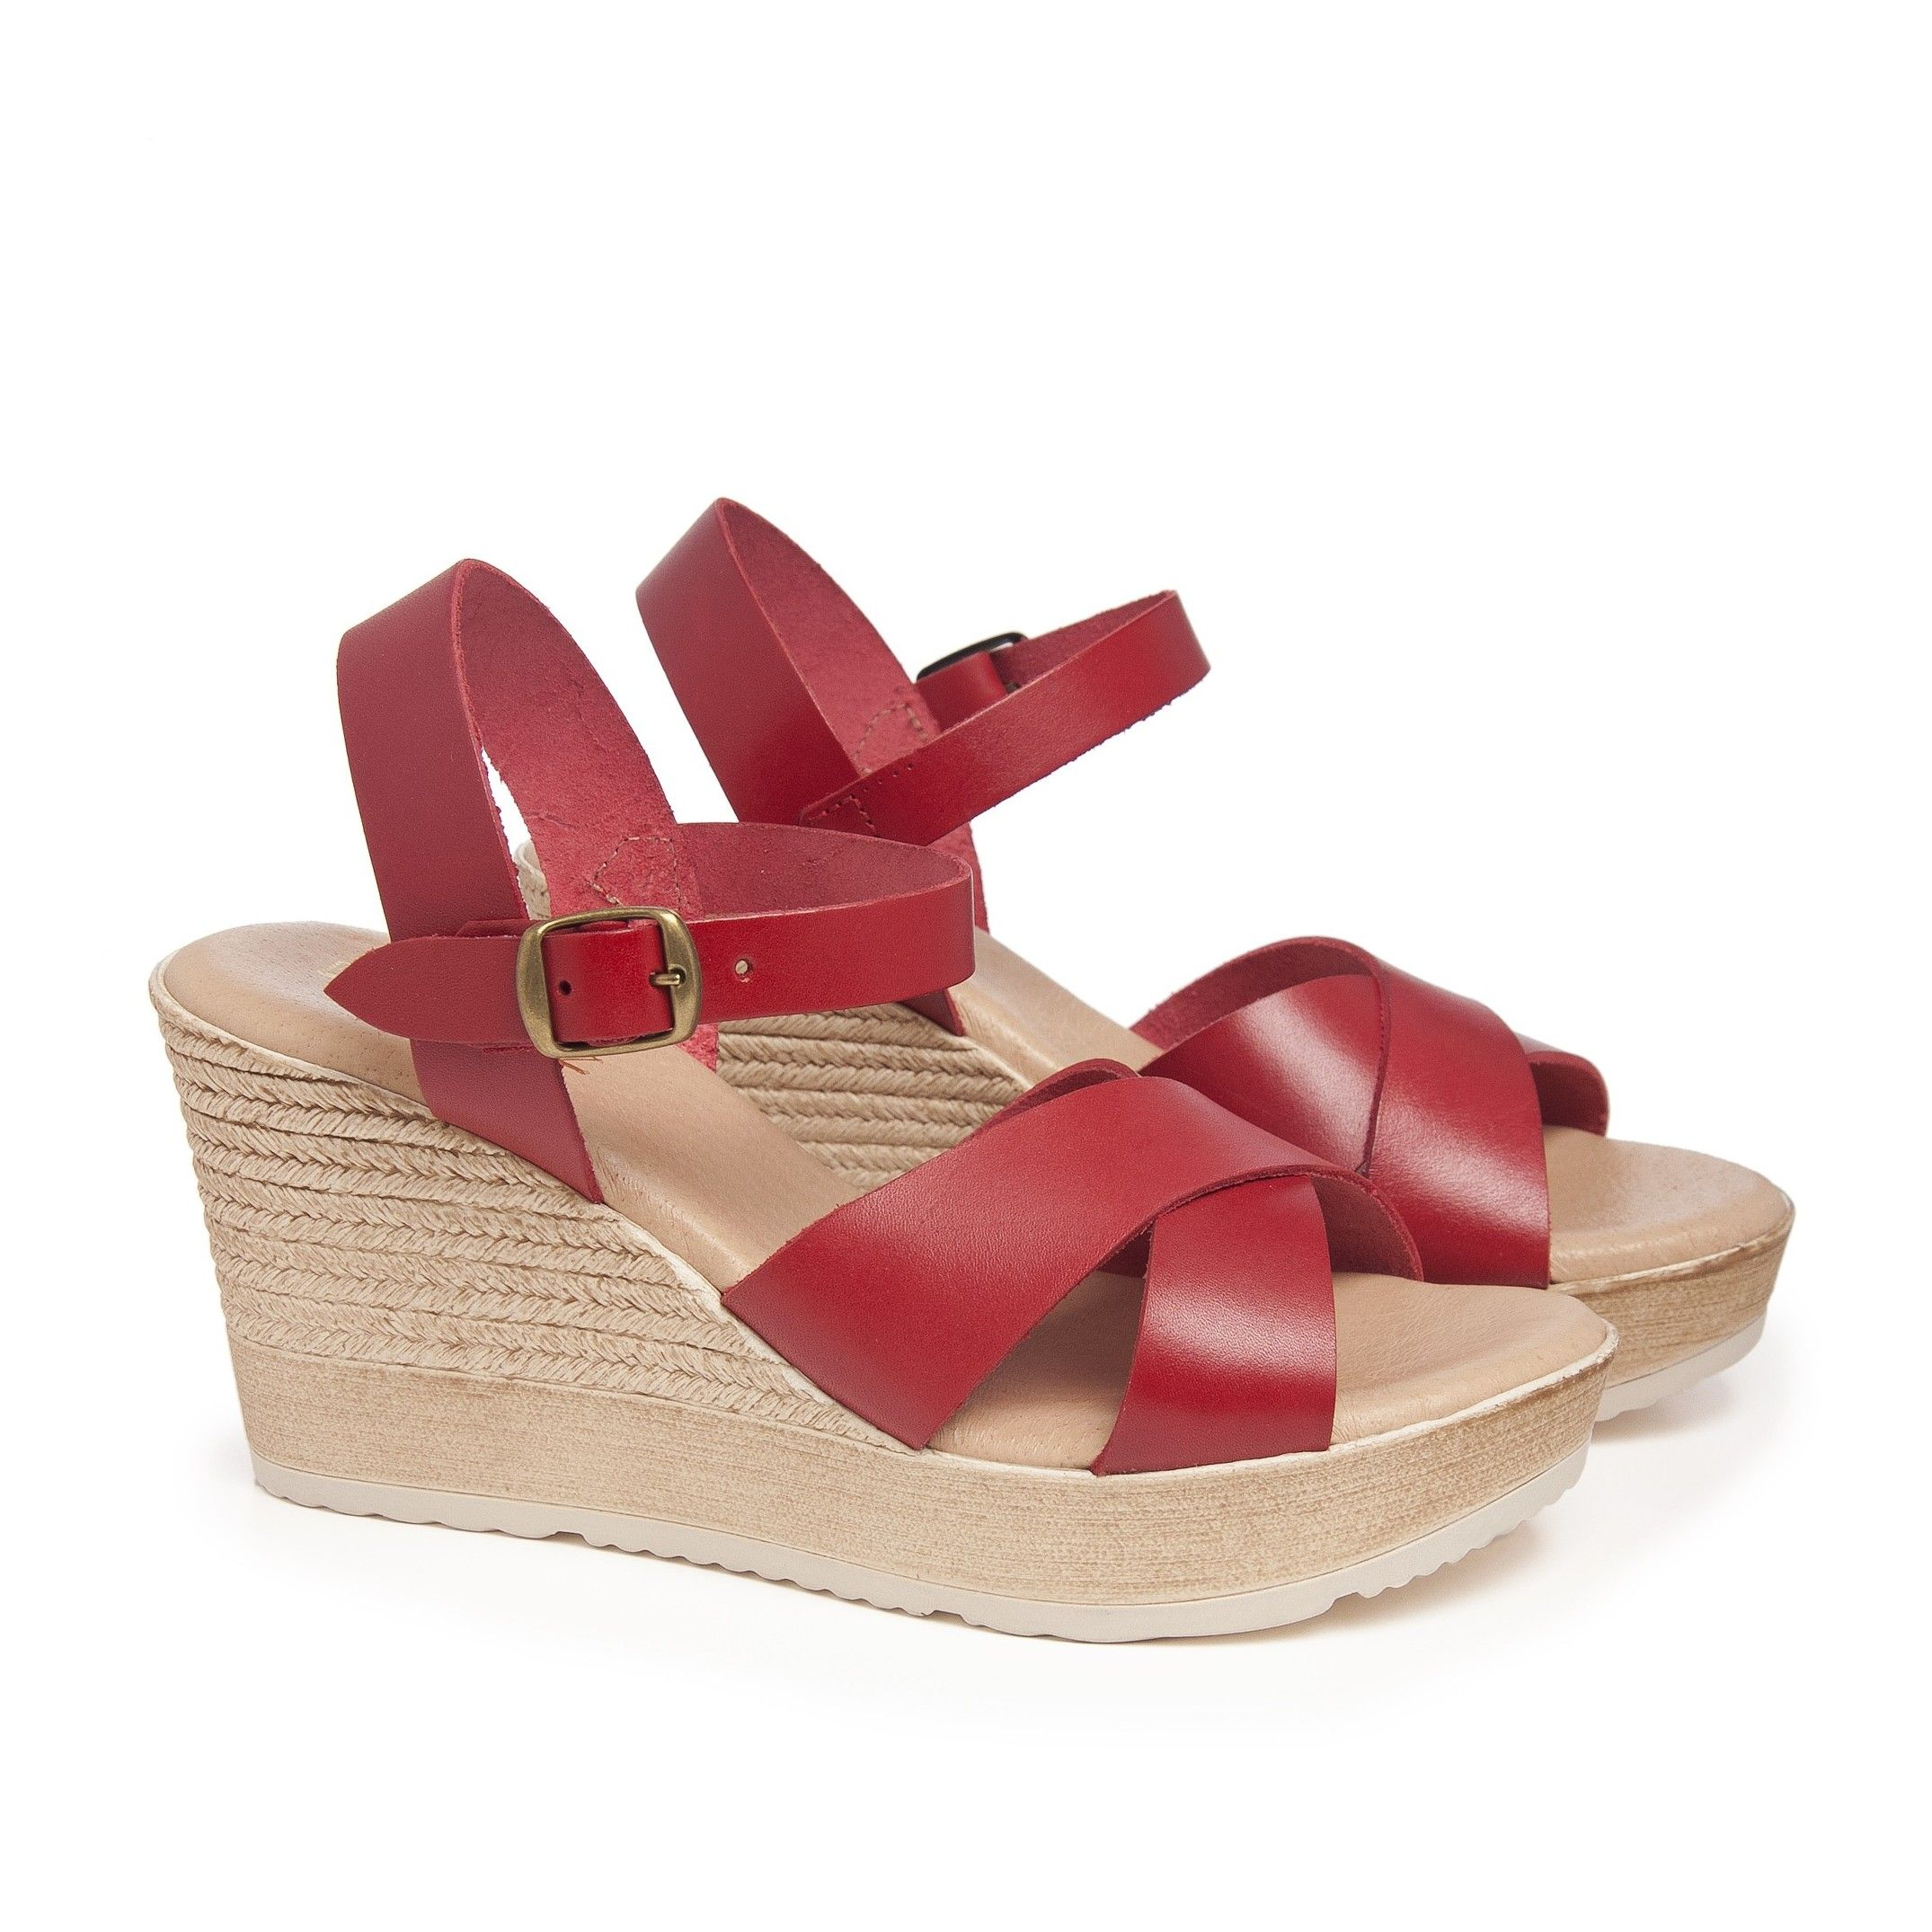 Hight Wedge Leather Sandal for Women Eva Lopez